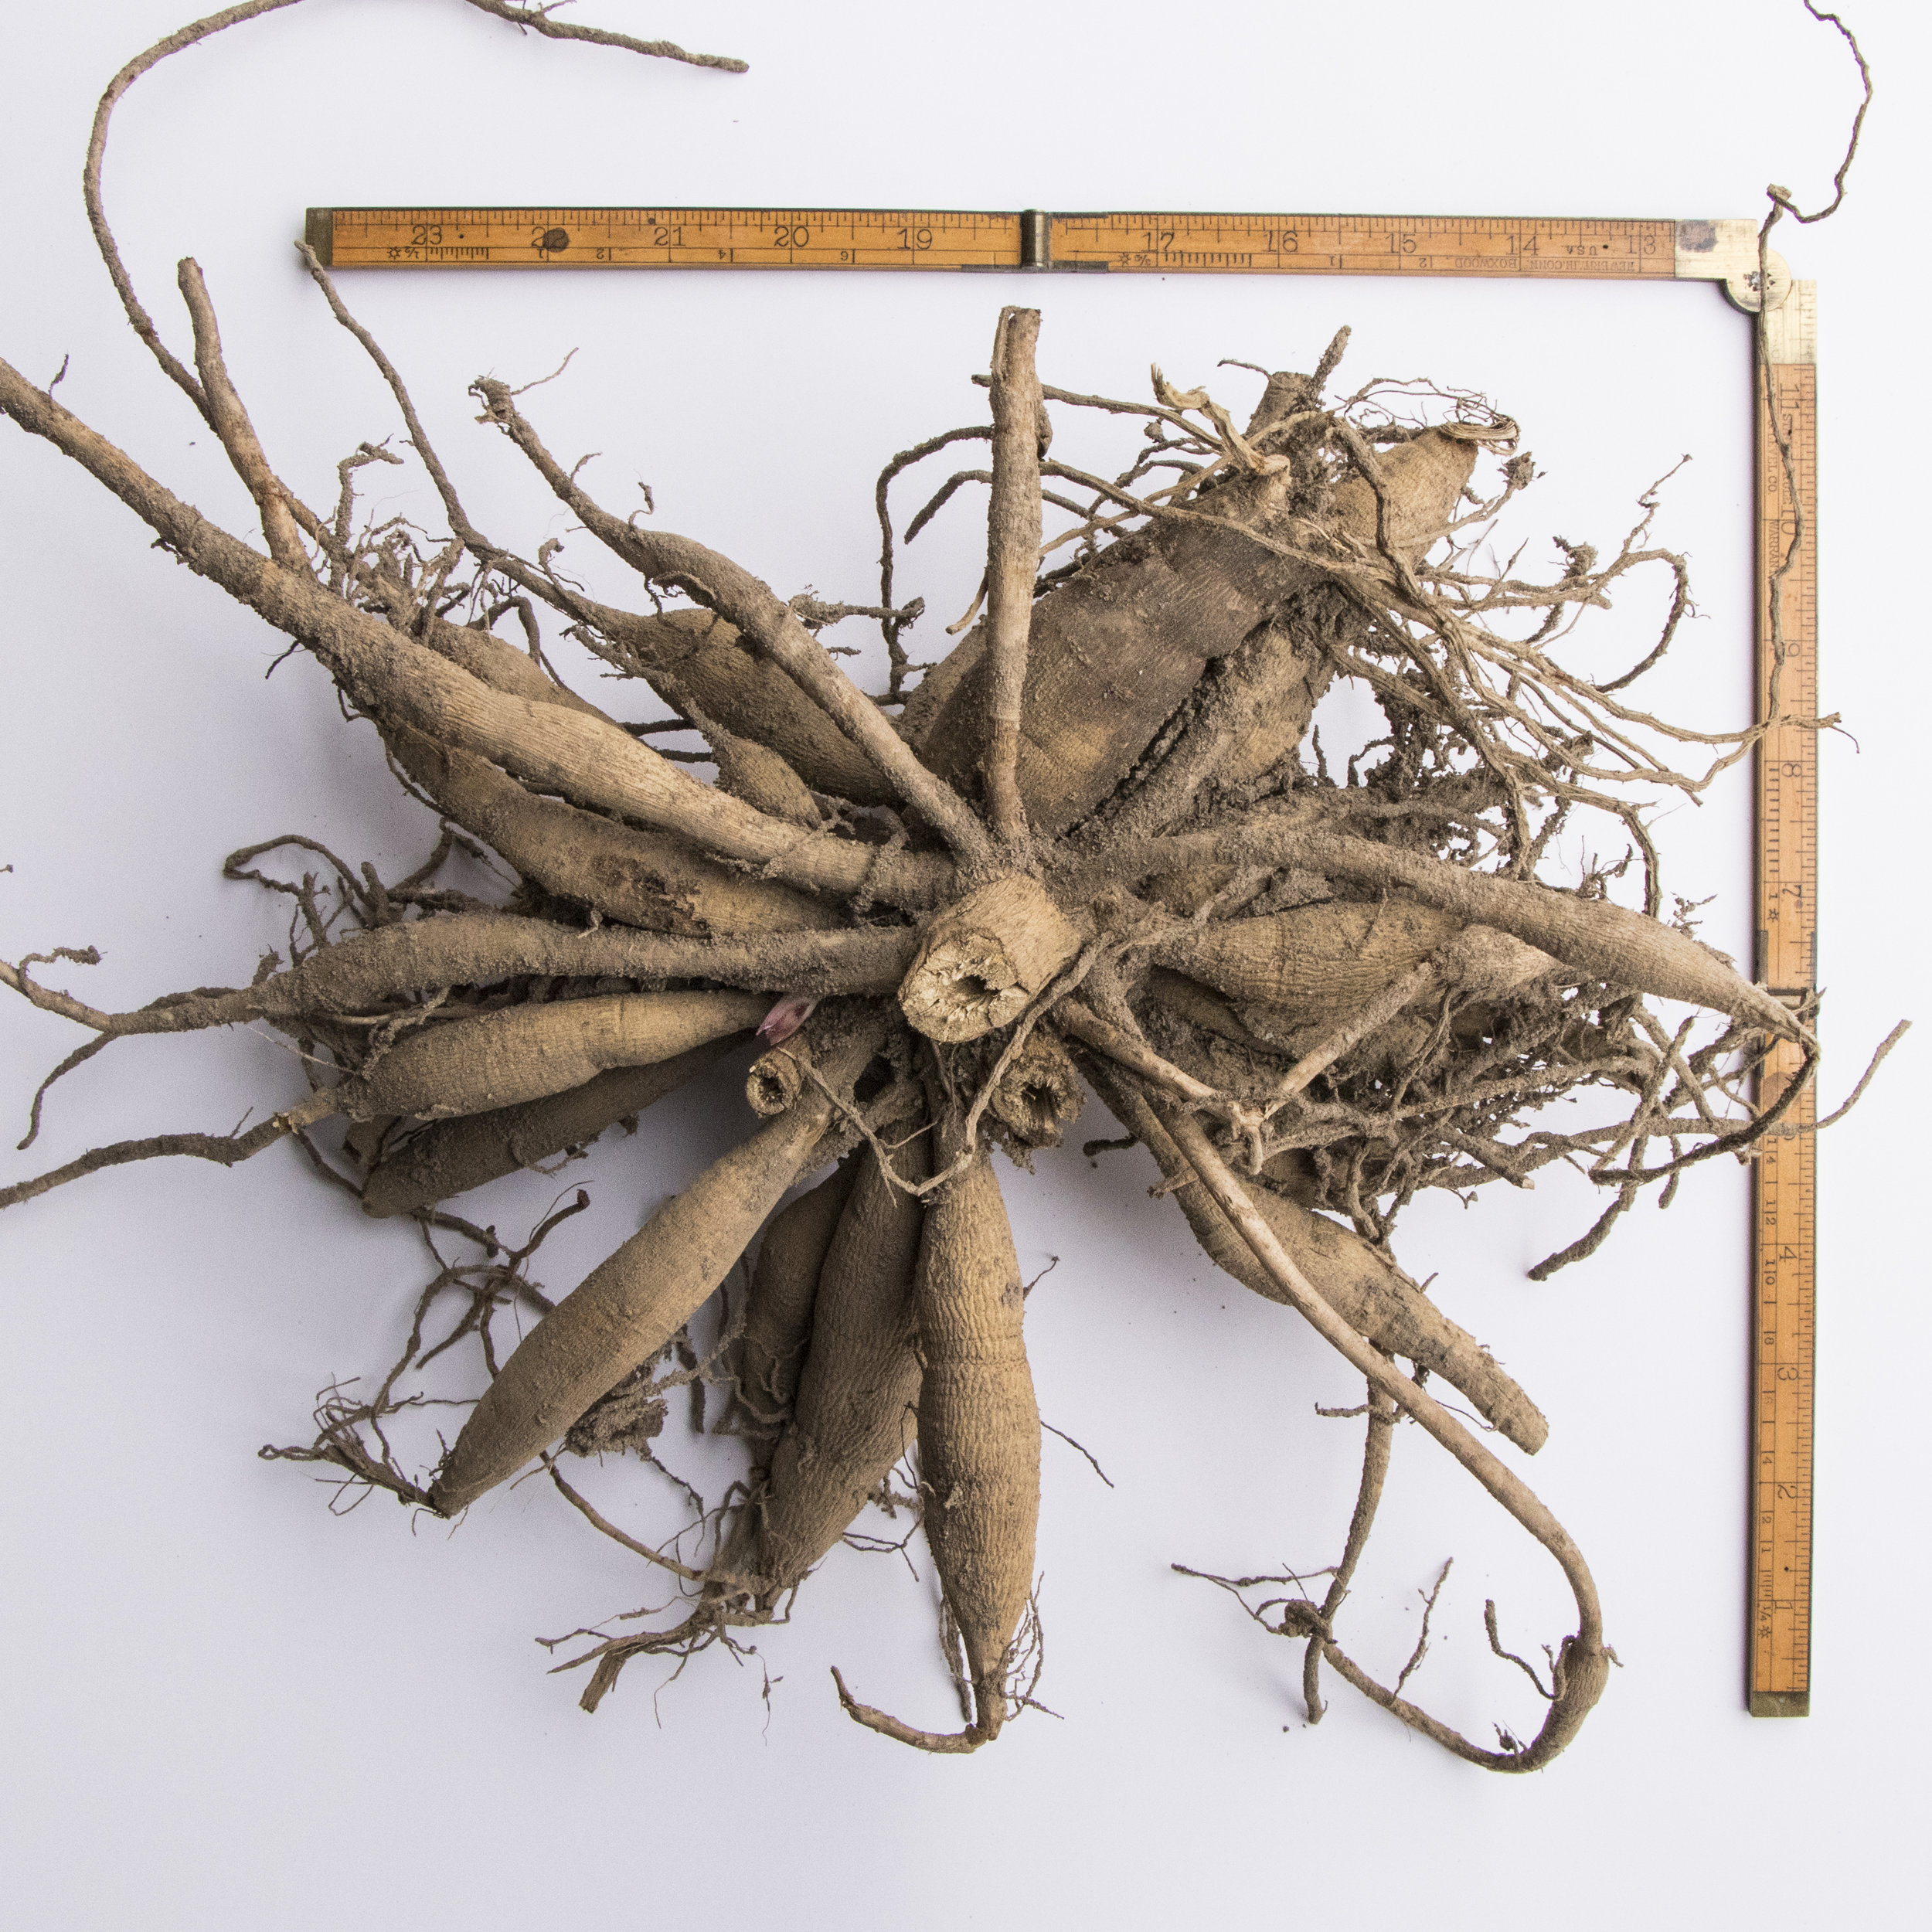 A typical clump of Rip City dahlia tubers. It is one of the most productive varieties we grow.